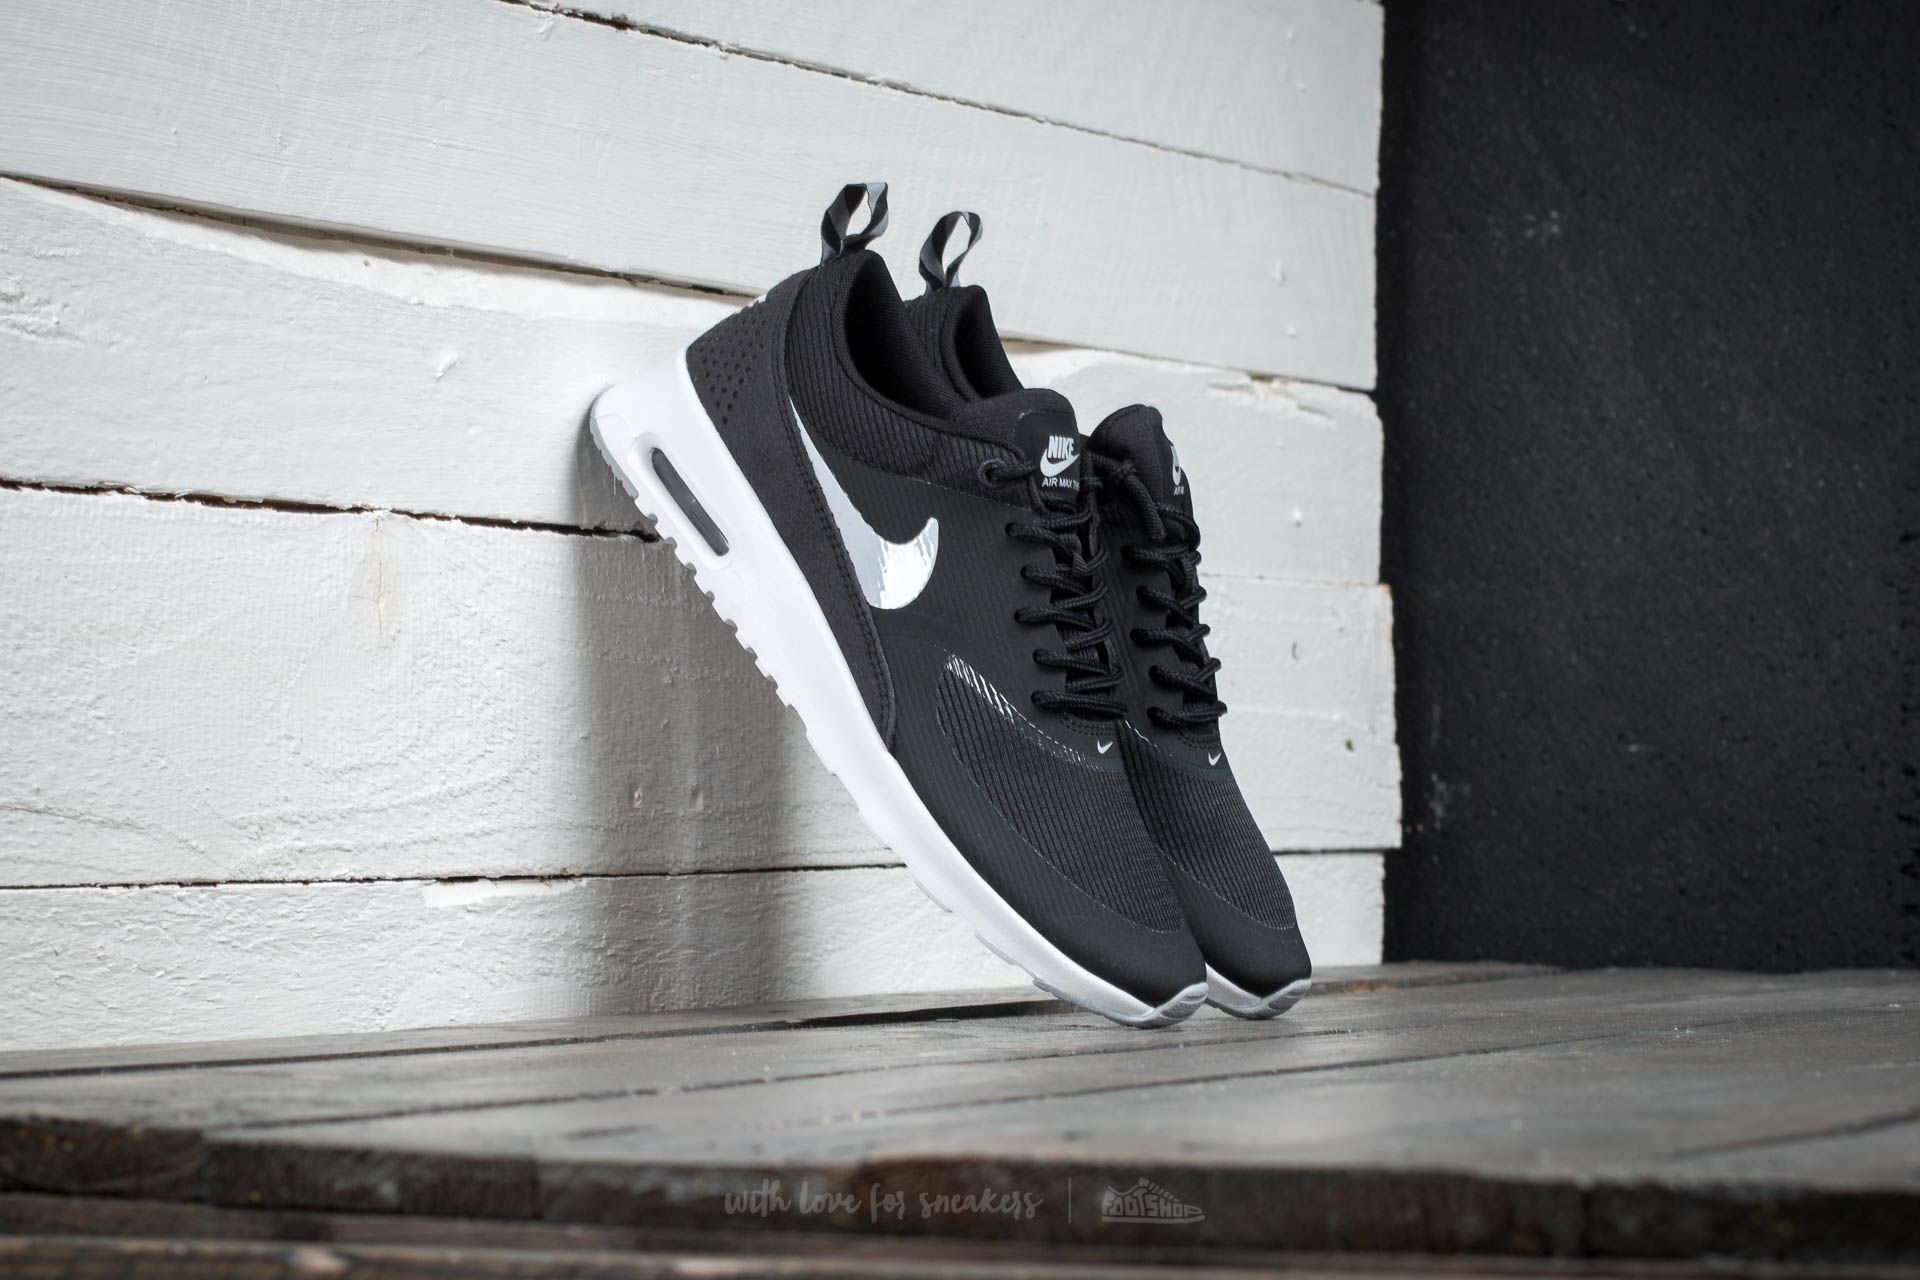 Wmns Nike Air Max Thea Black/ Wolf Grey Anthracite White Footshop – FR